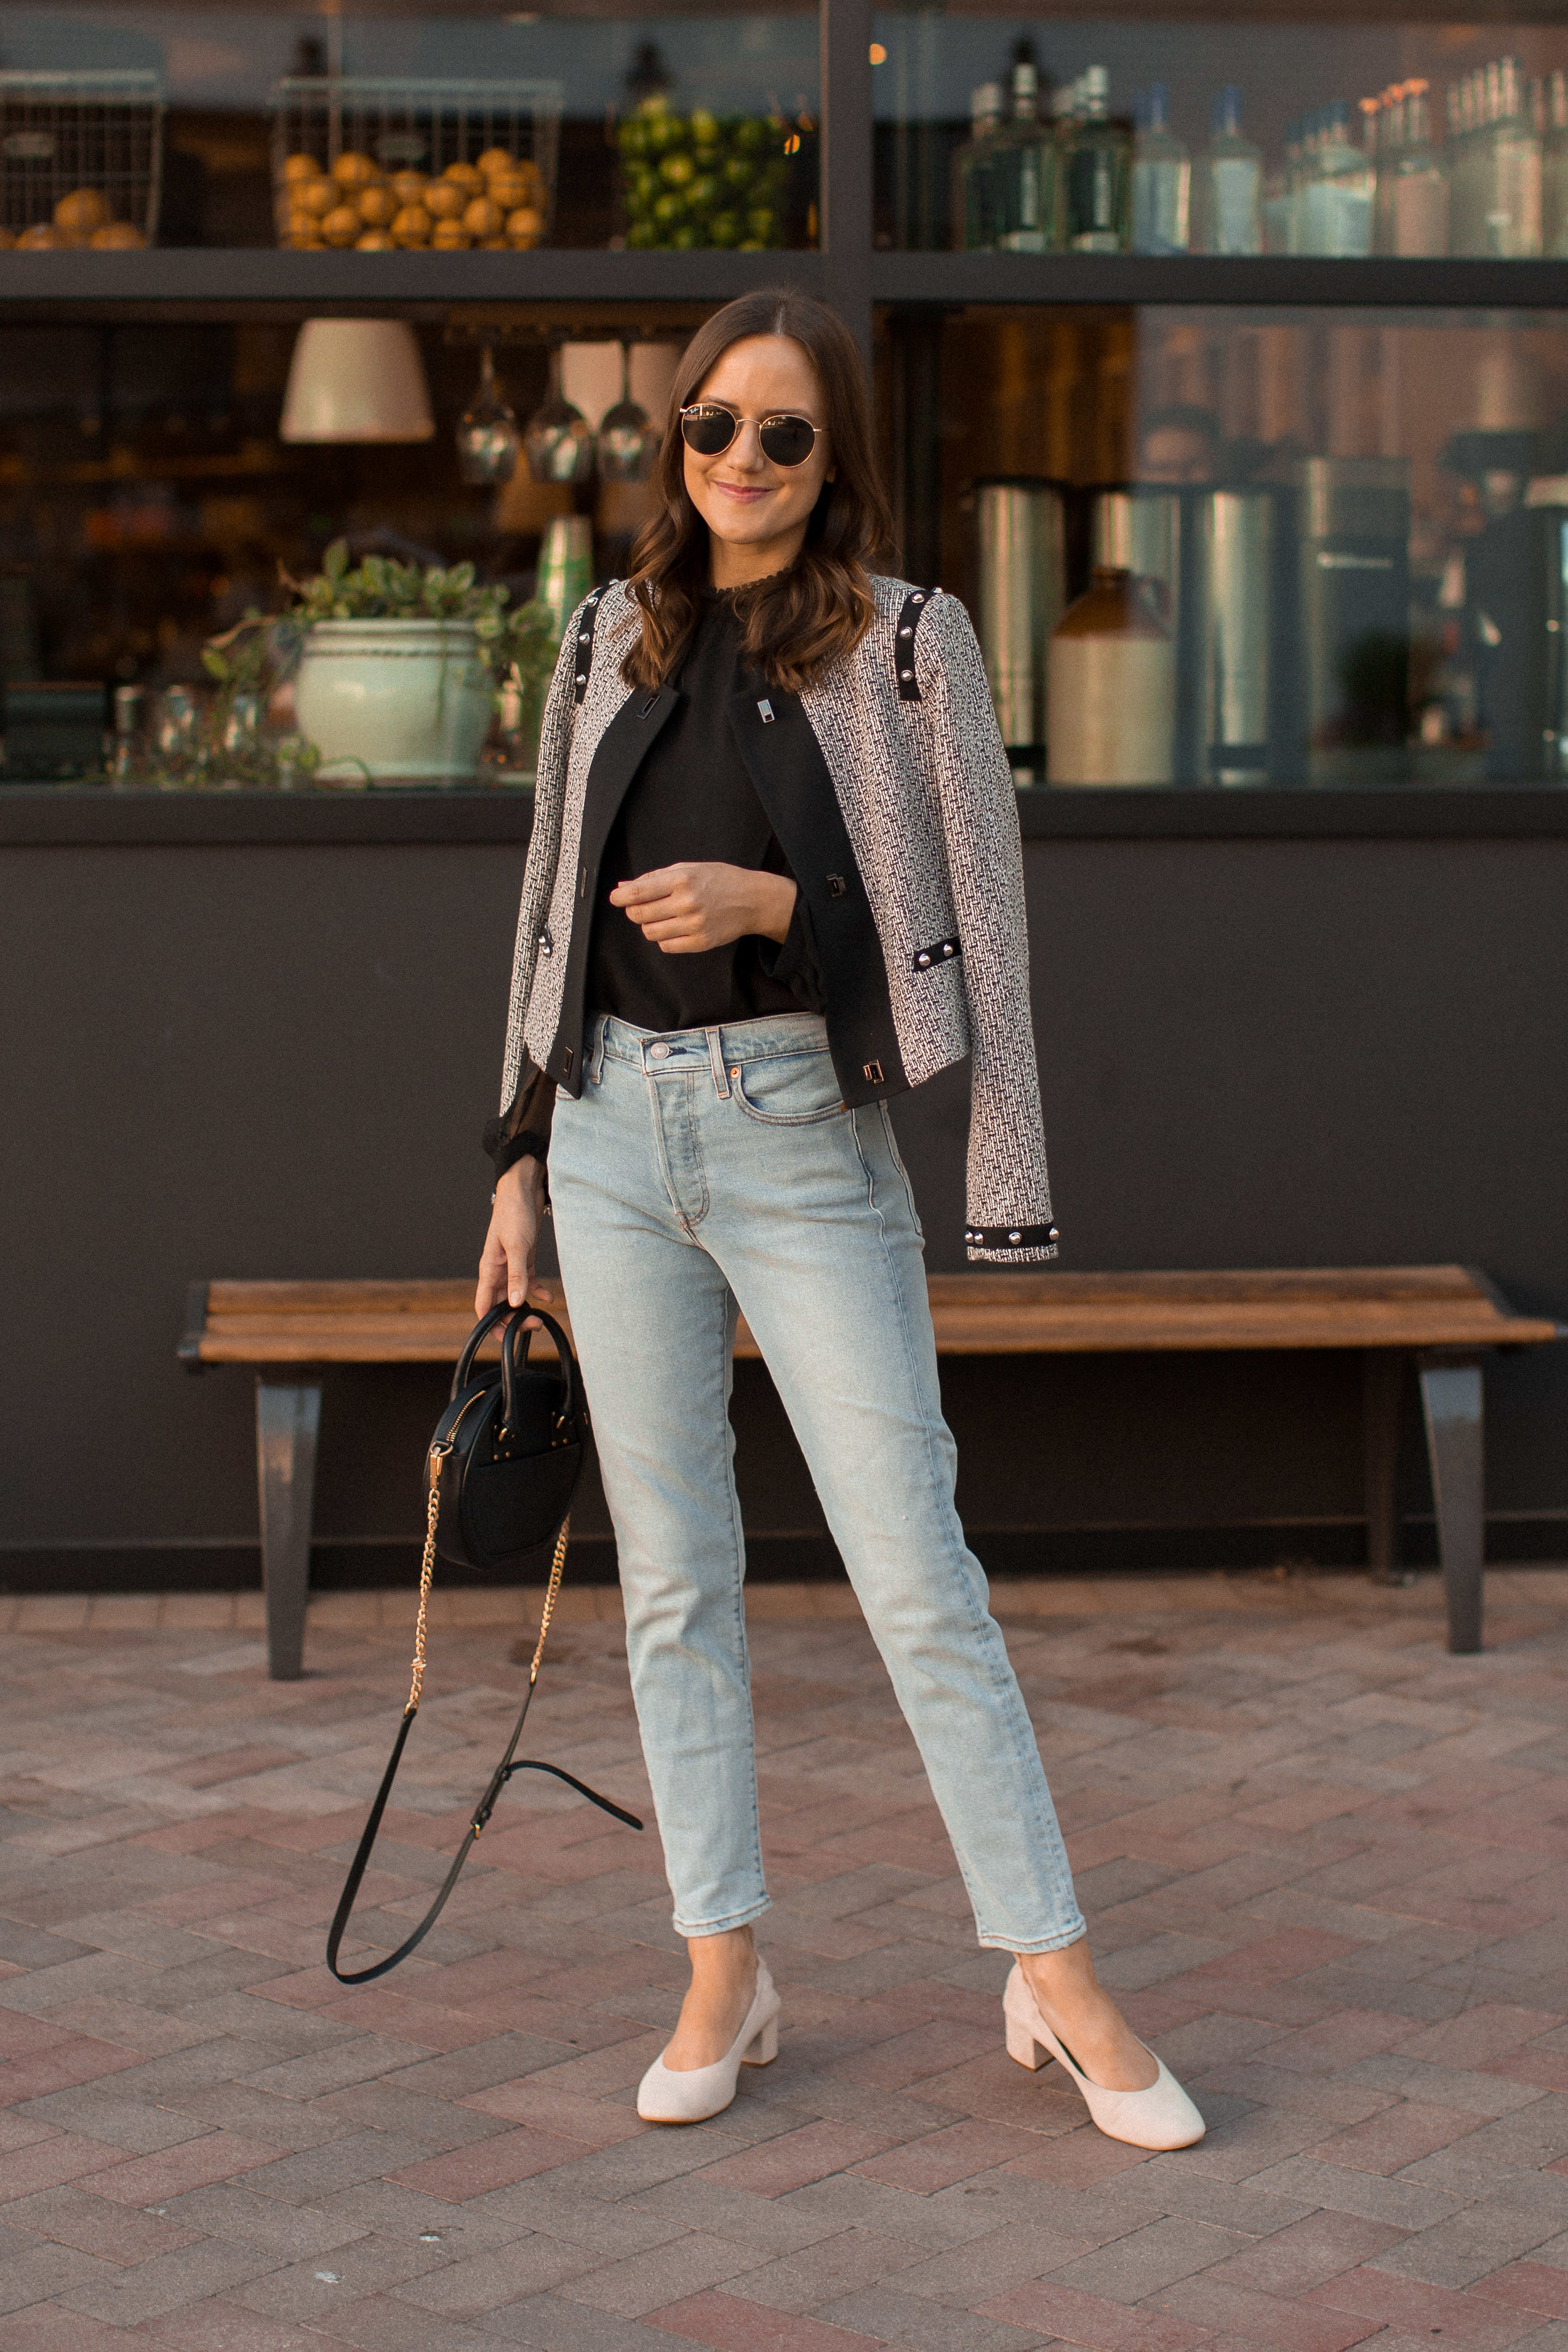 Shop the Look Below.  Adelyn Rae Top  c/o |  Adelyn Rae Jacket  c/o |  Levi's Jeans  |  Everlane Shoes  c/o |  Rebecca Minkoff Bag  |  Ray-Ban Sunglasses